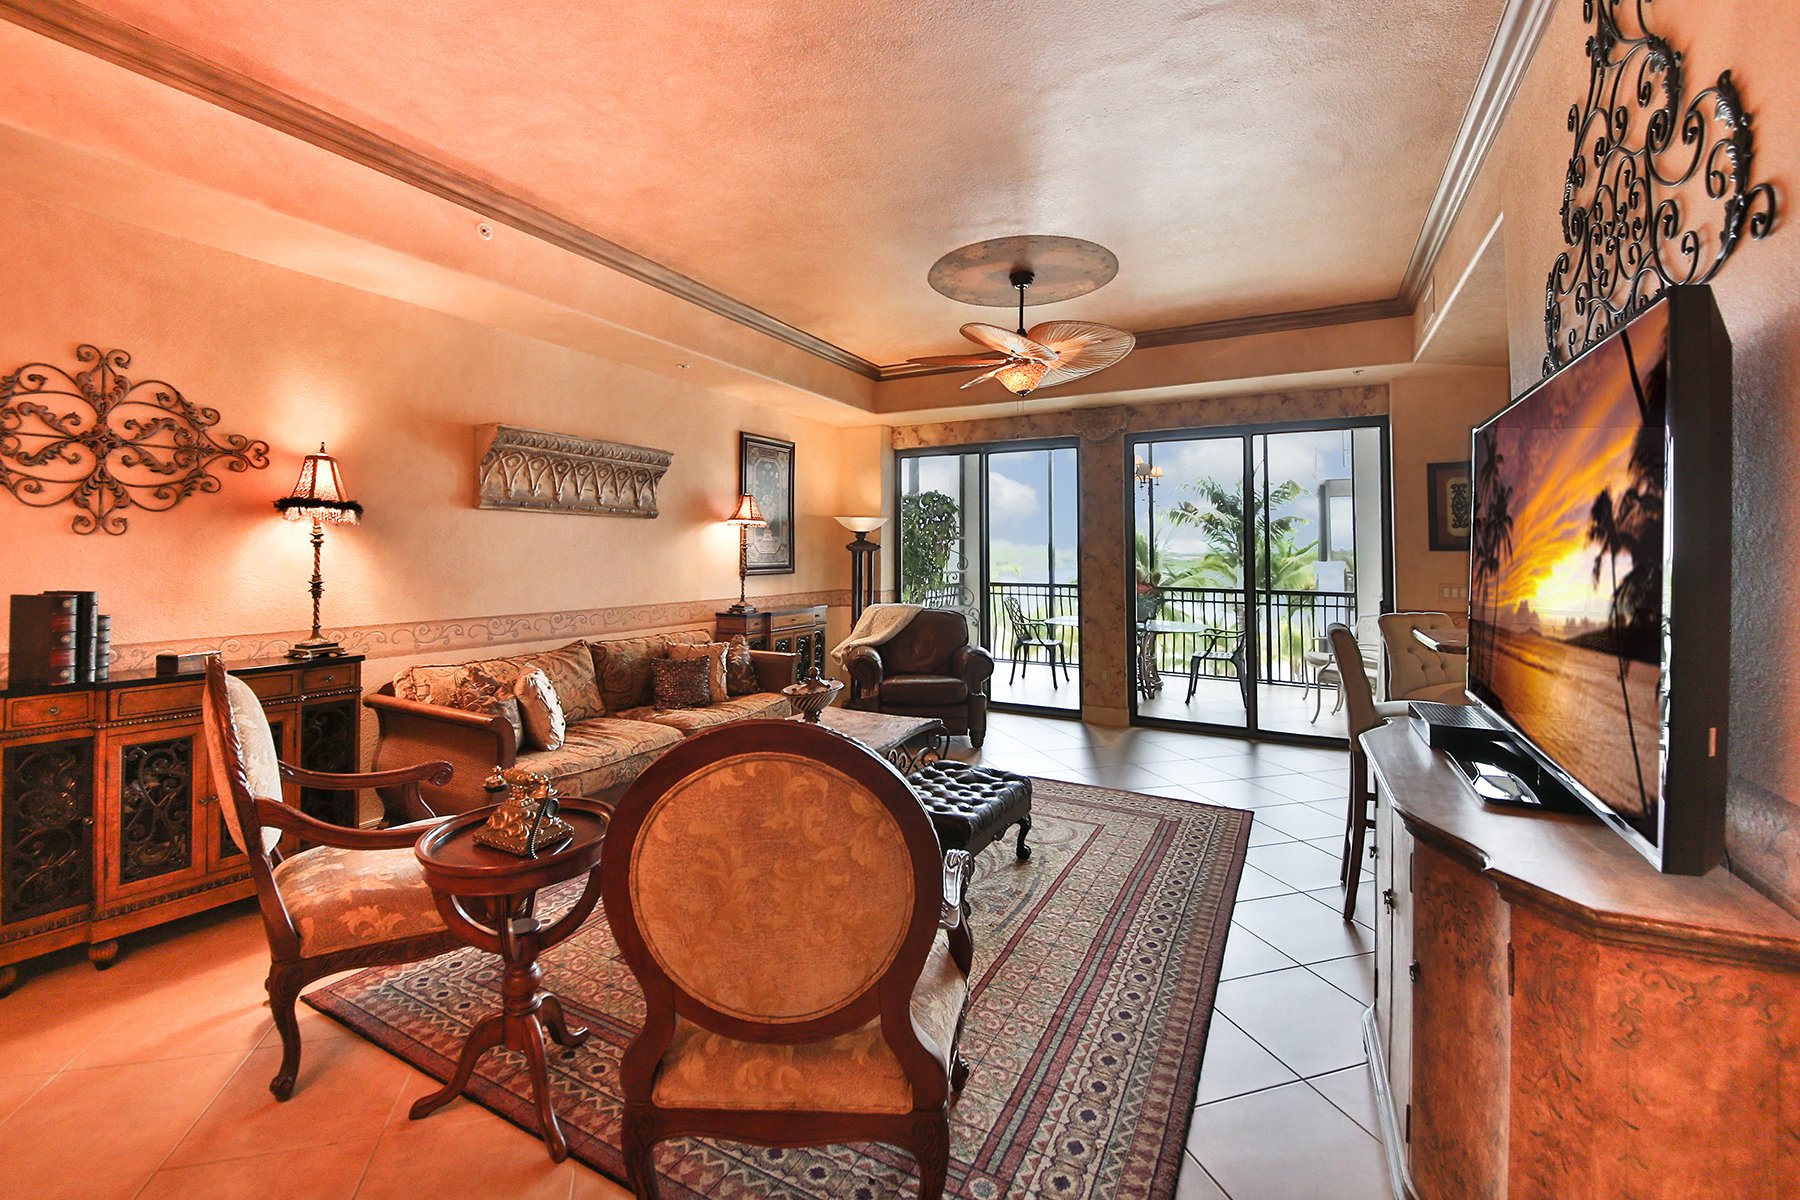 Condominium for Sale at MIRASOL - MIROMAR LAKES BEACH AND GULF CLUB 10731 Mirasol Dr 405, Miromar Lakes, Florida 33913 United States